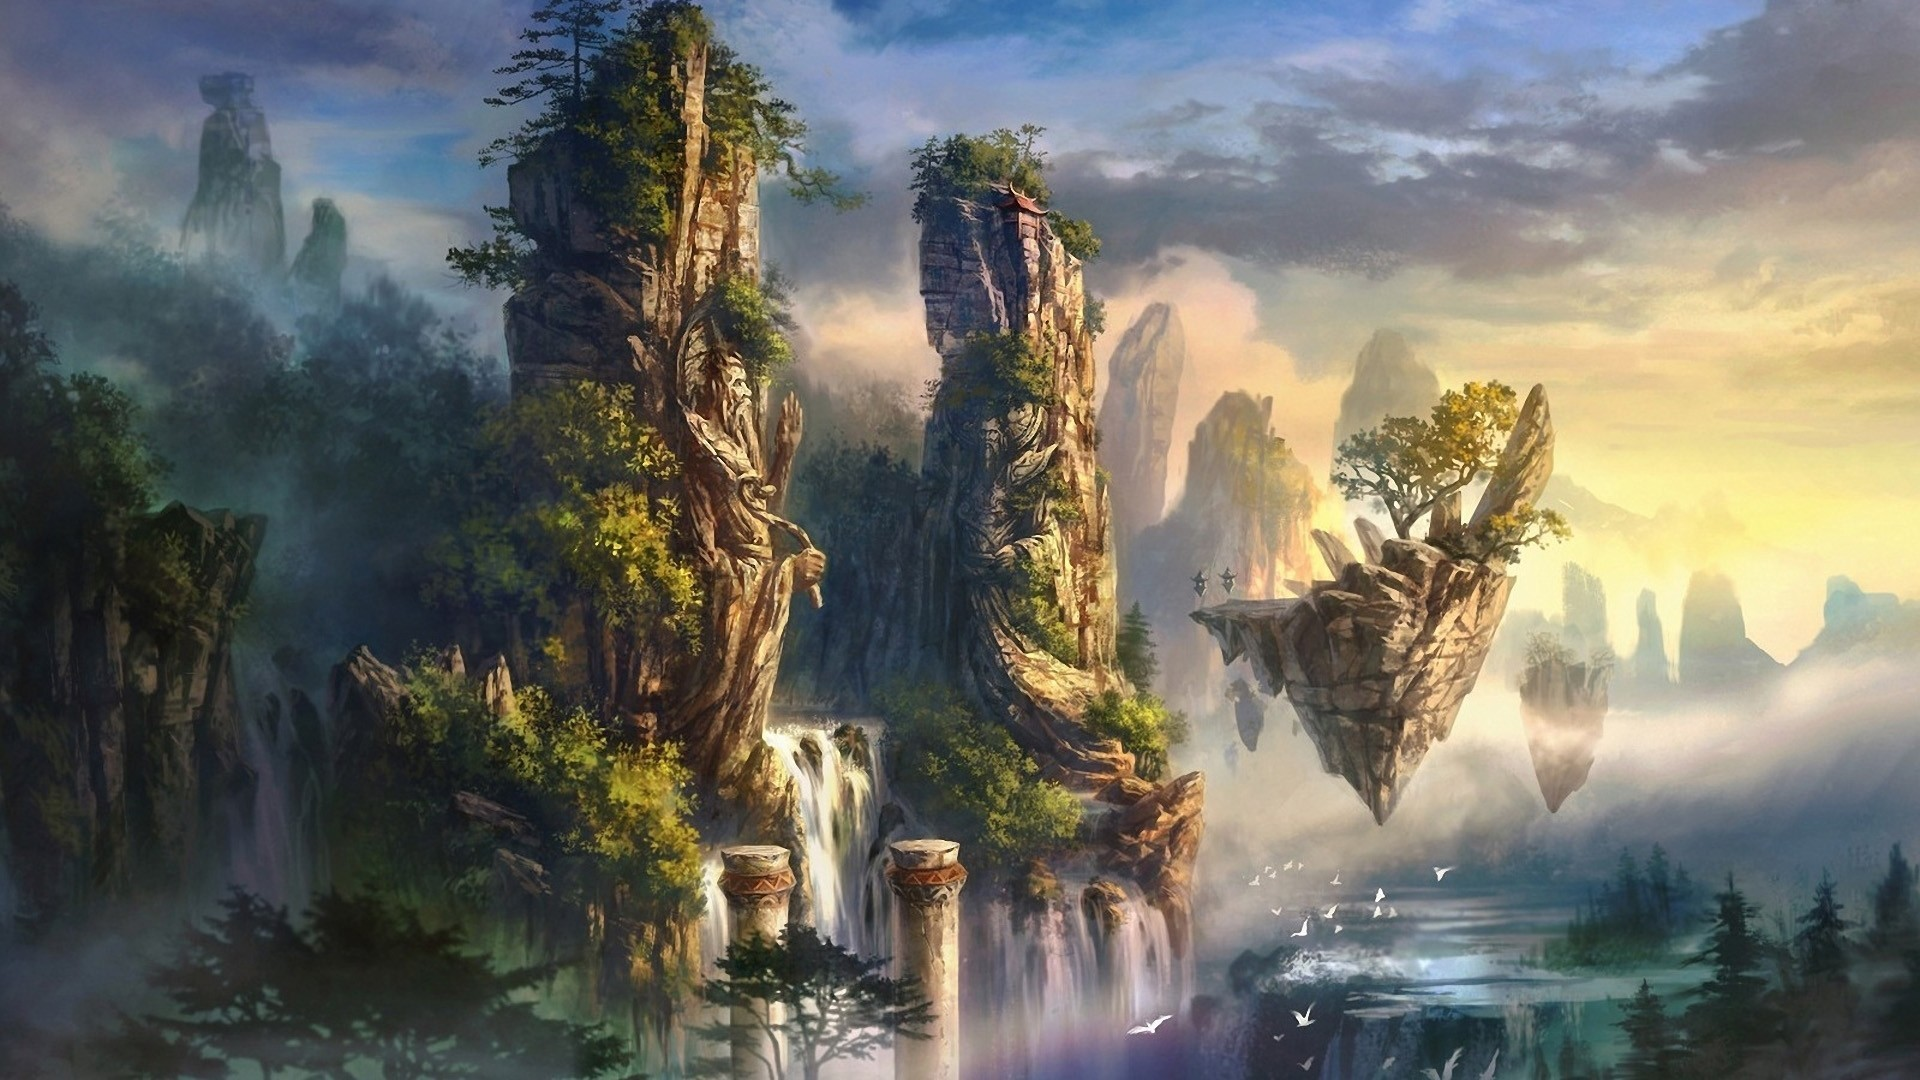 Fantasy art wallpapers 72 background pictures - Art village wallpaper ...